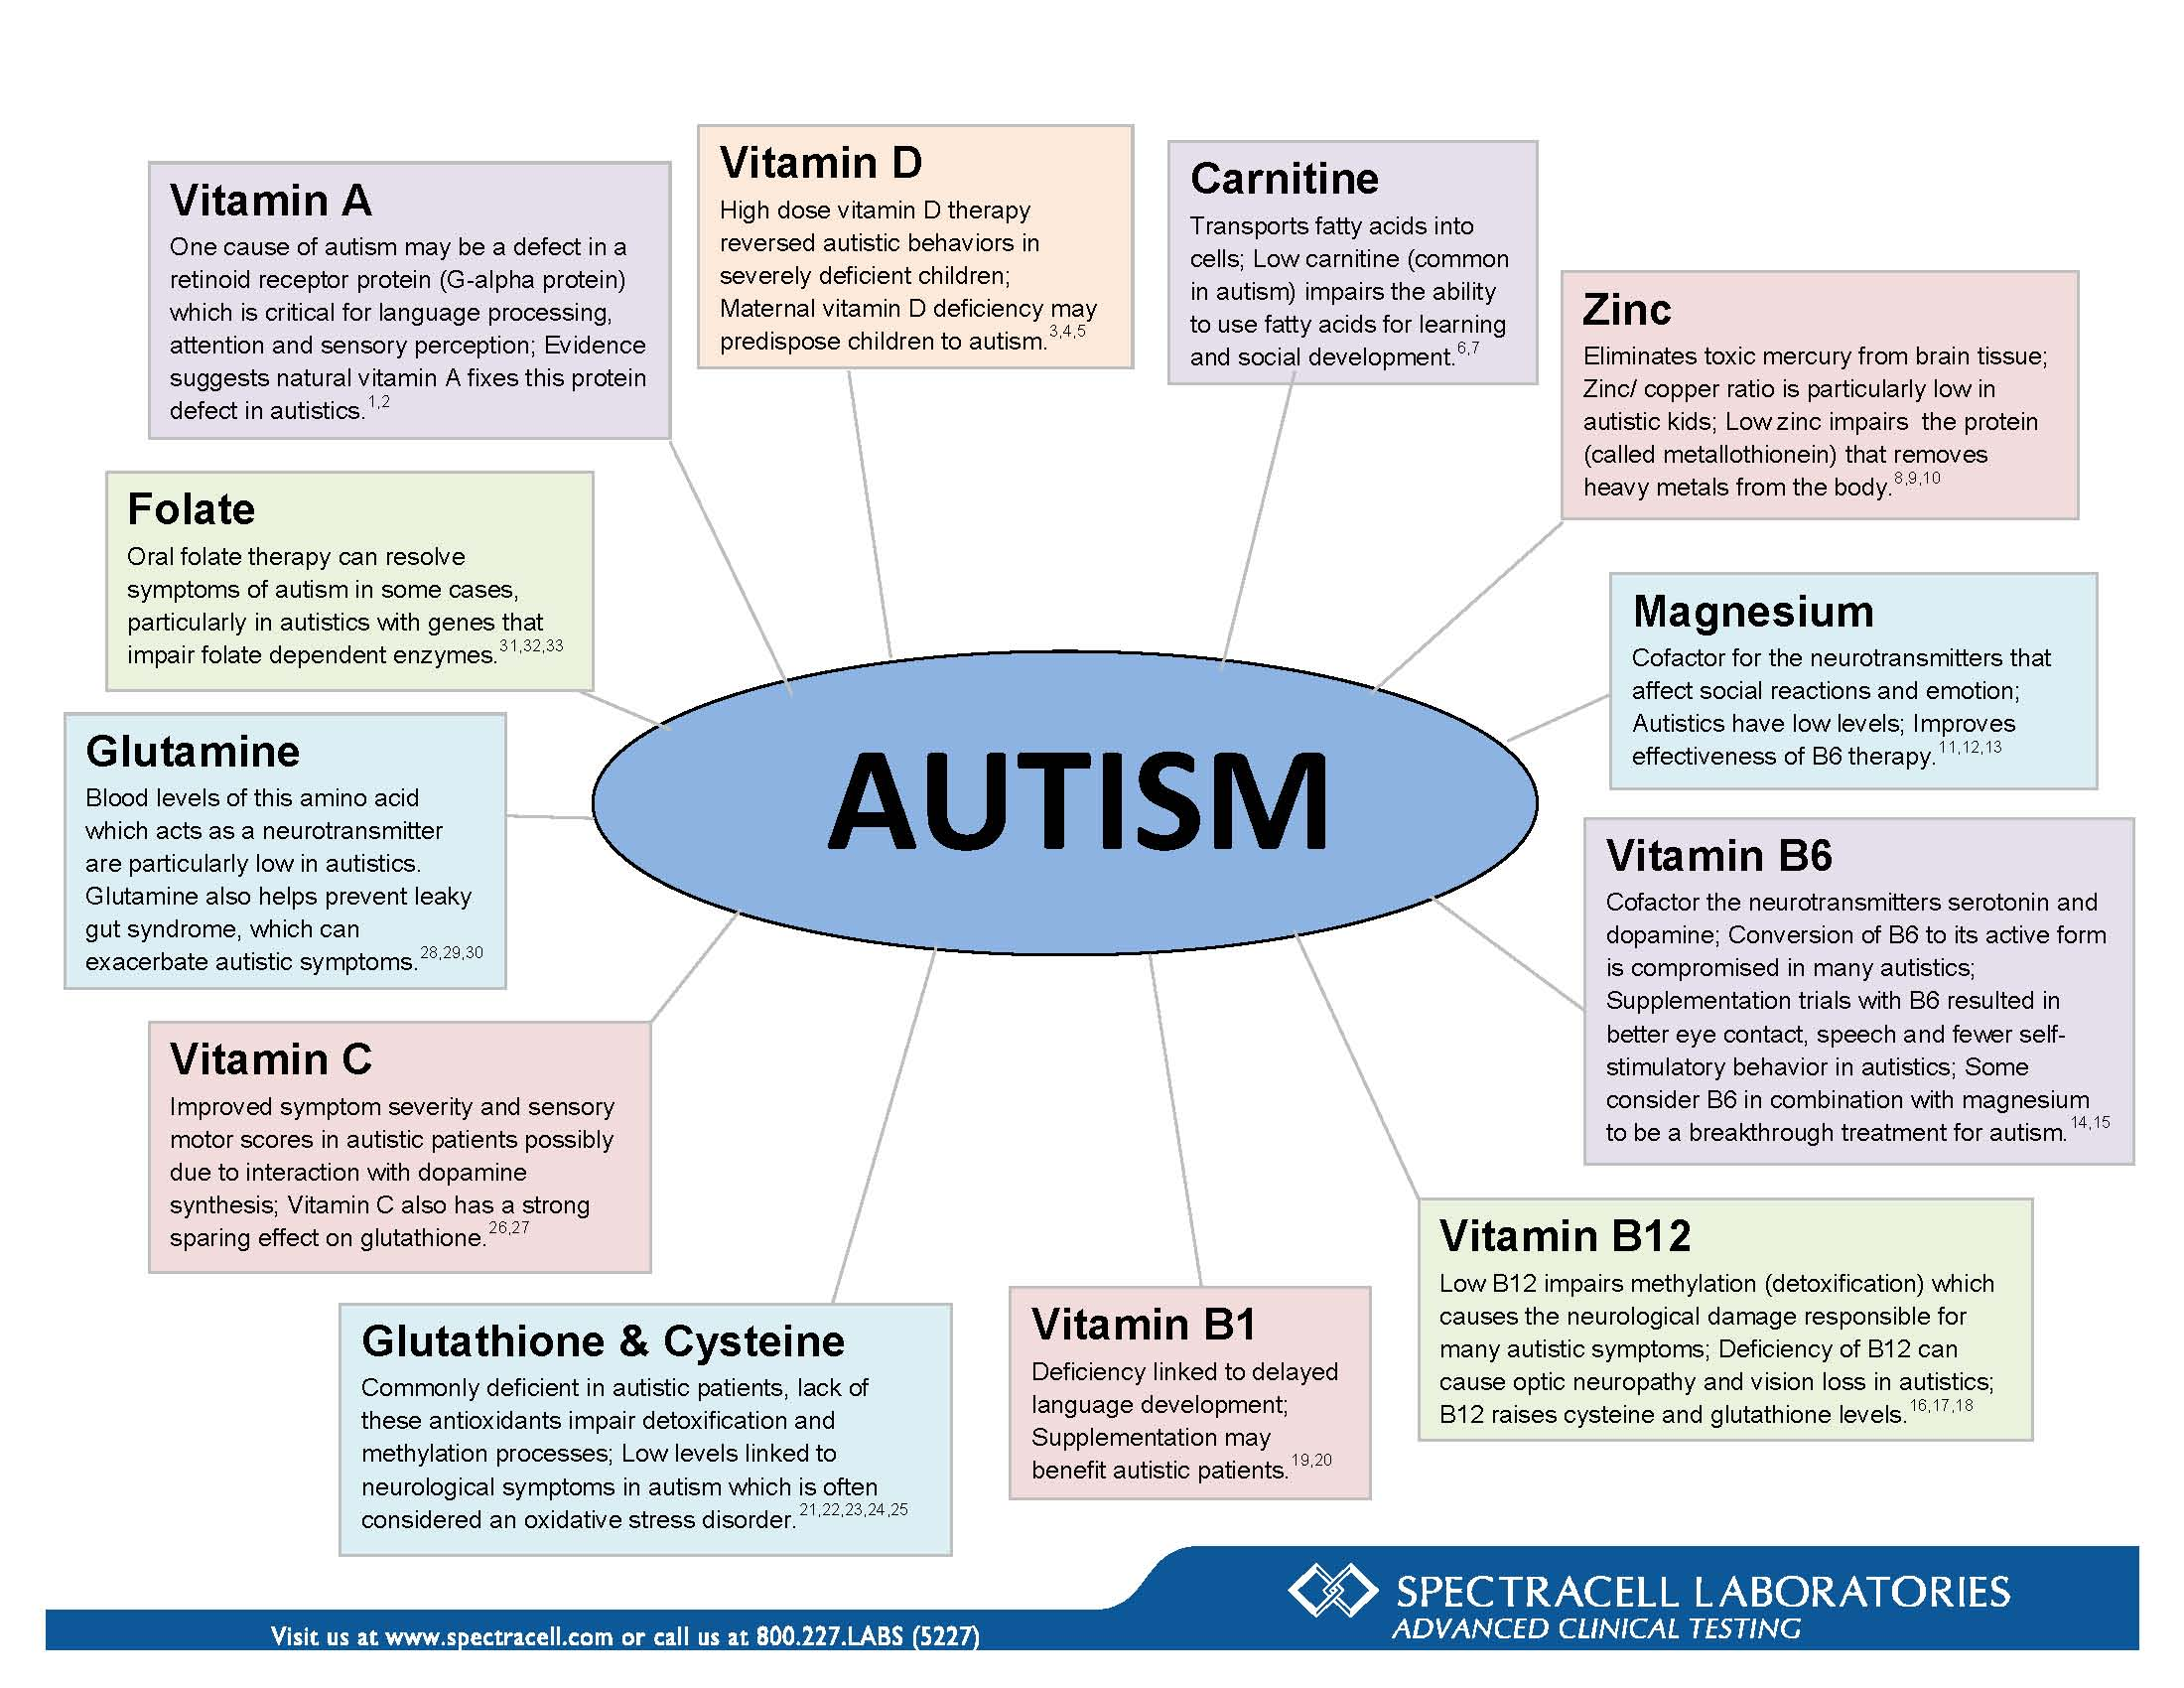 SpectraCell's Nutritional Correlation Chart on Autism